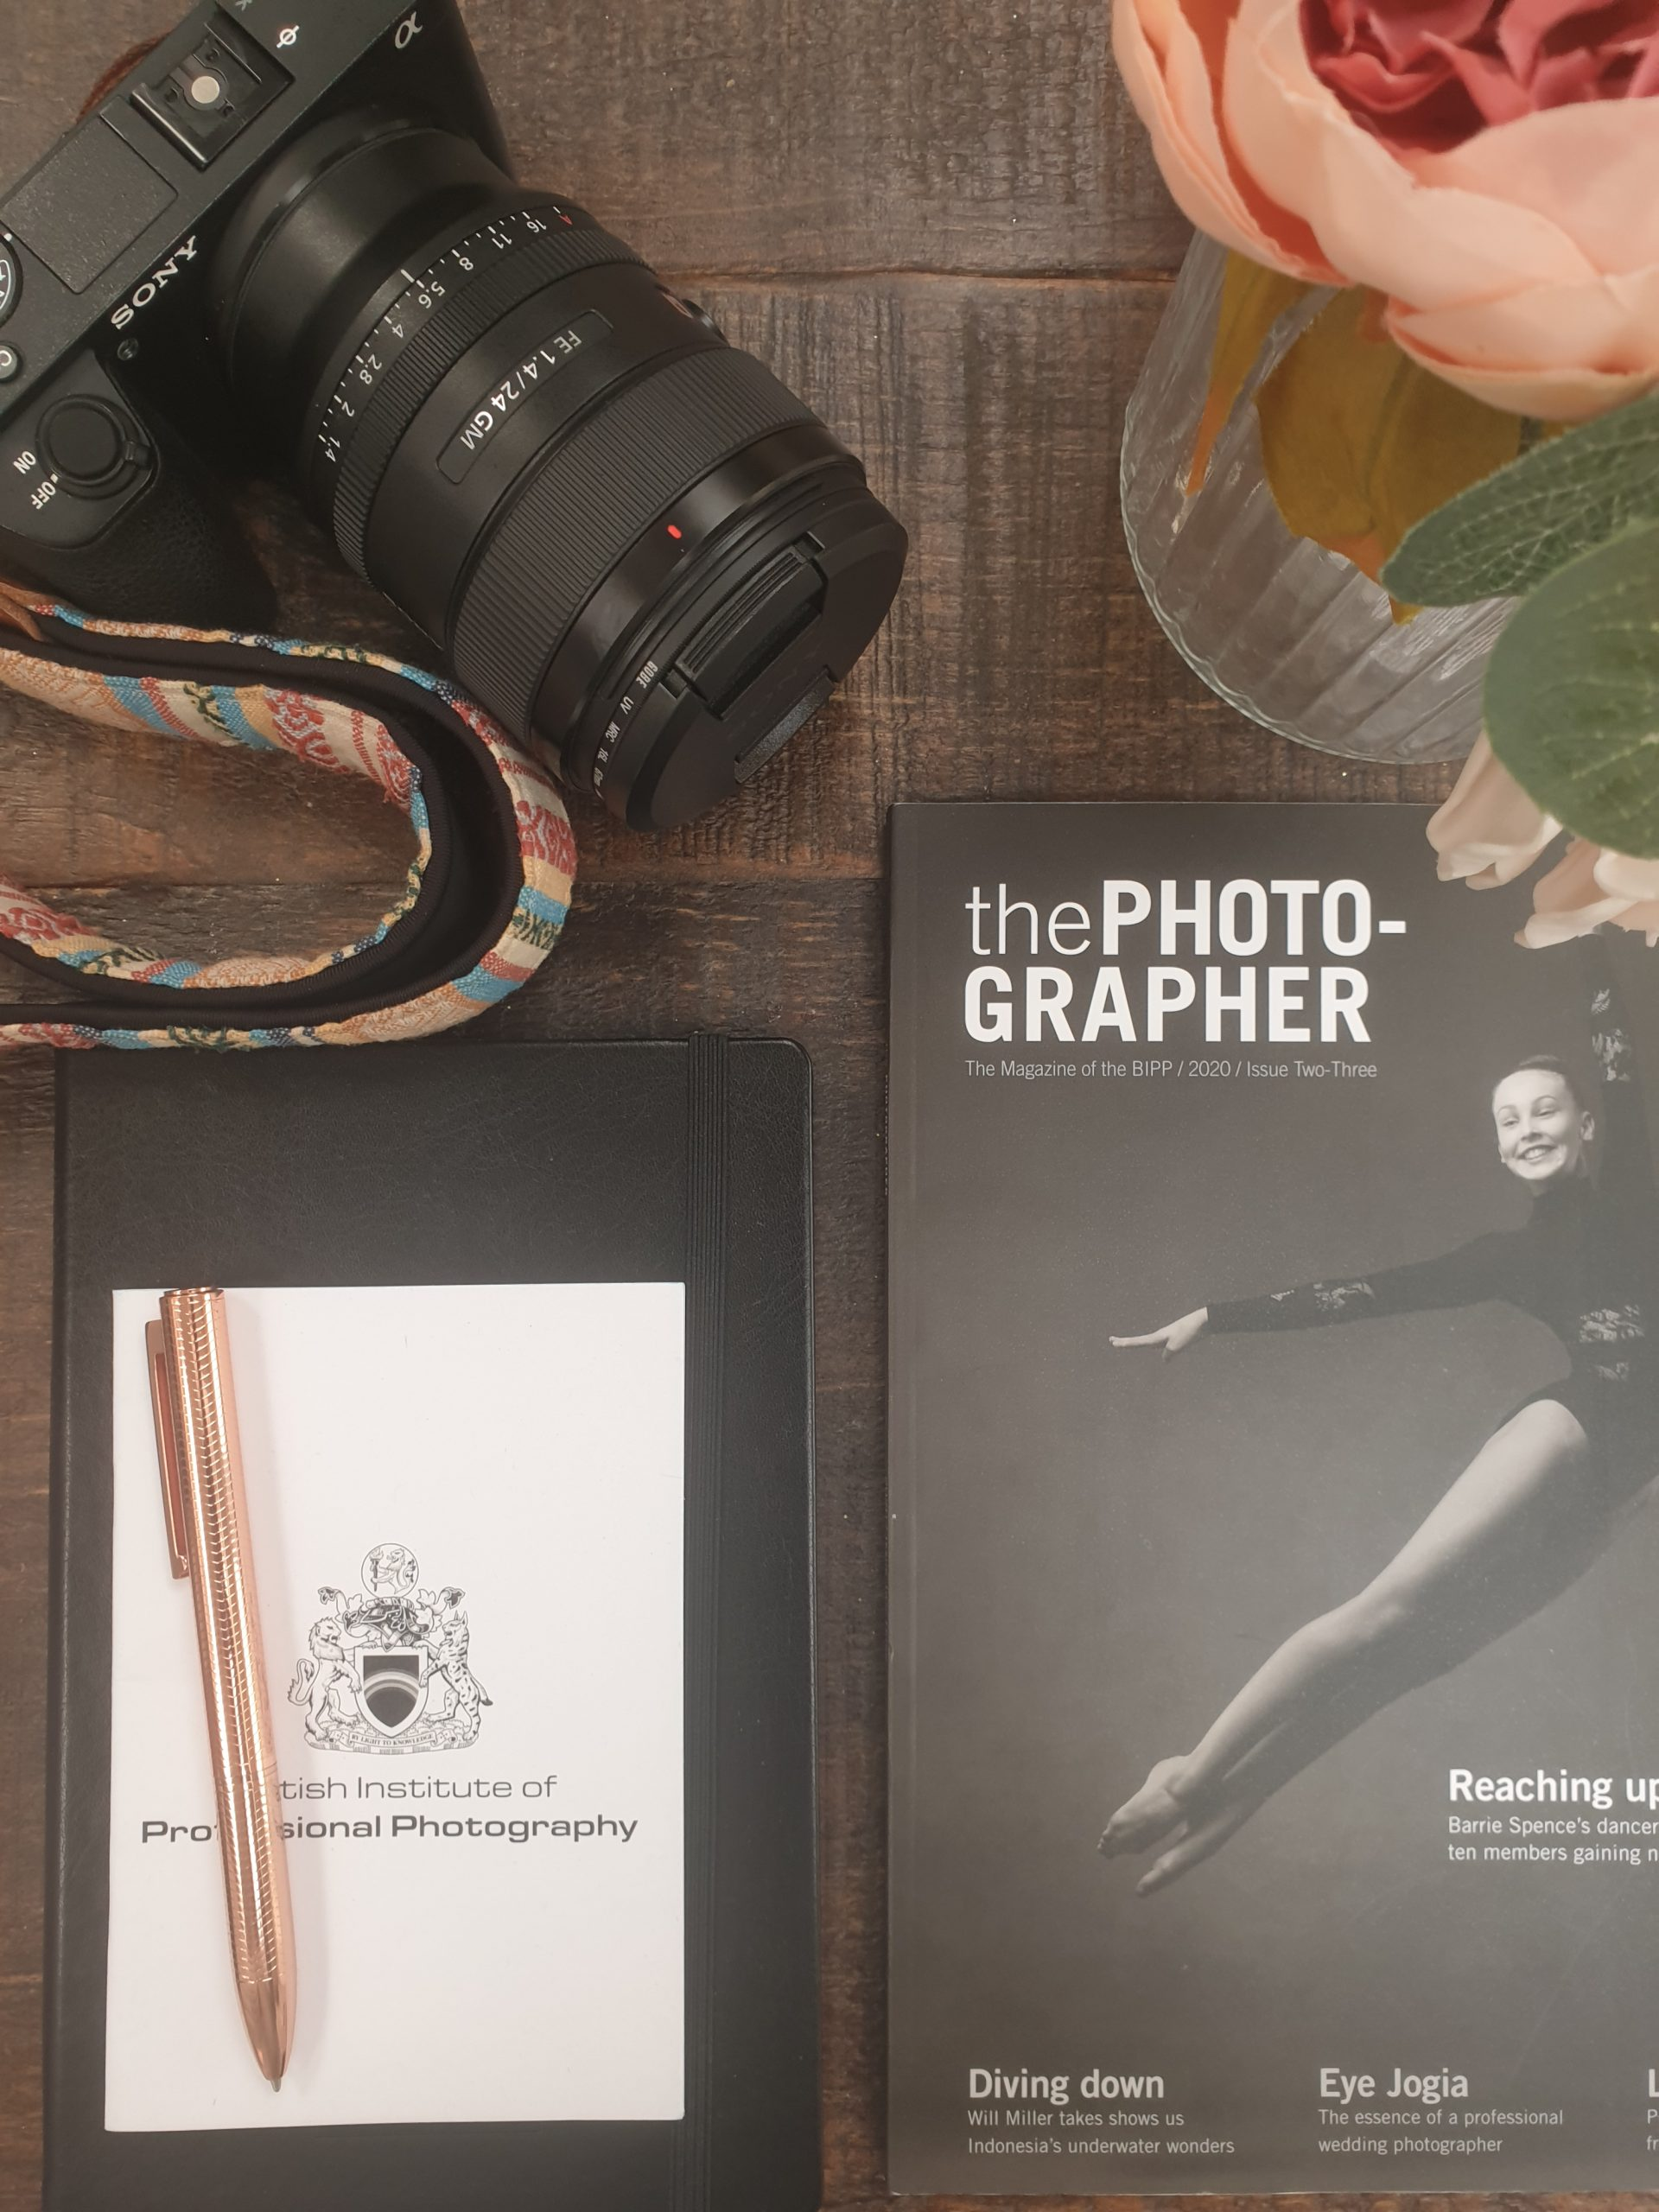 The photographer professional photography magazine and sony camera